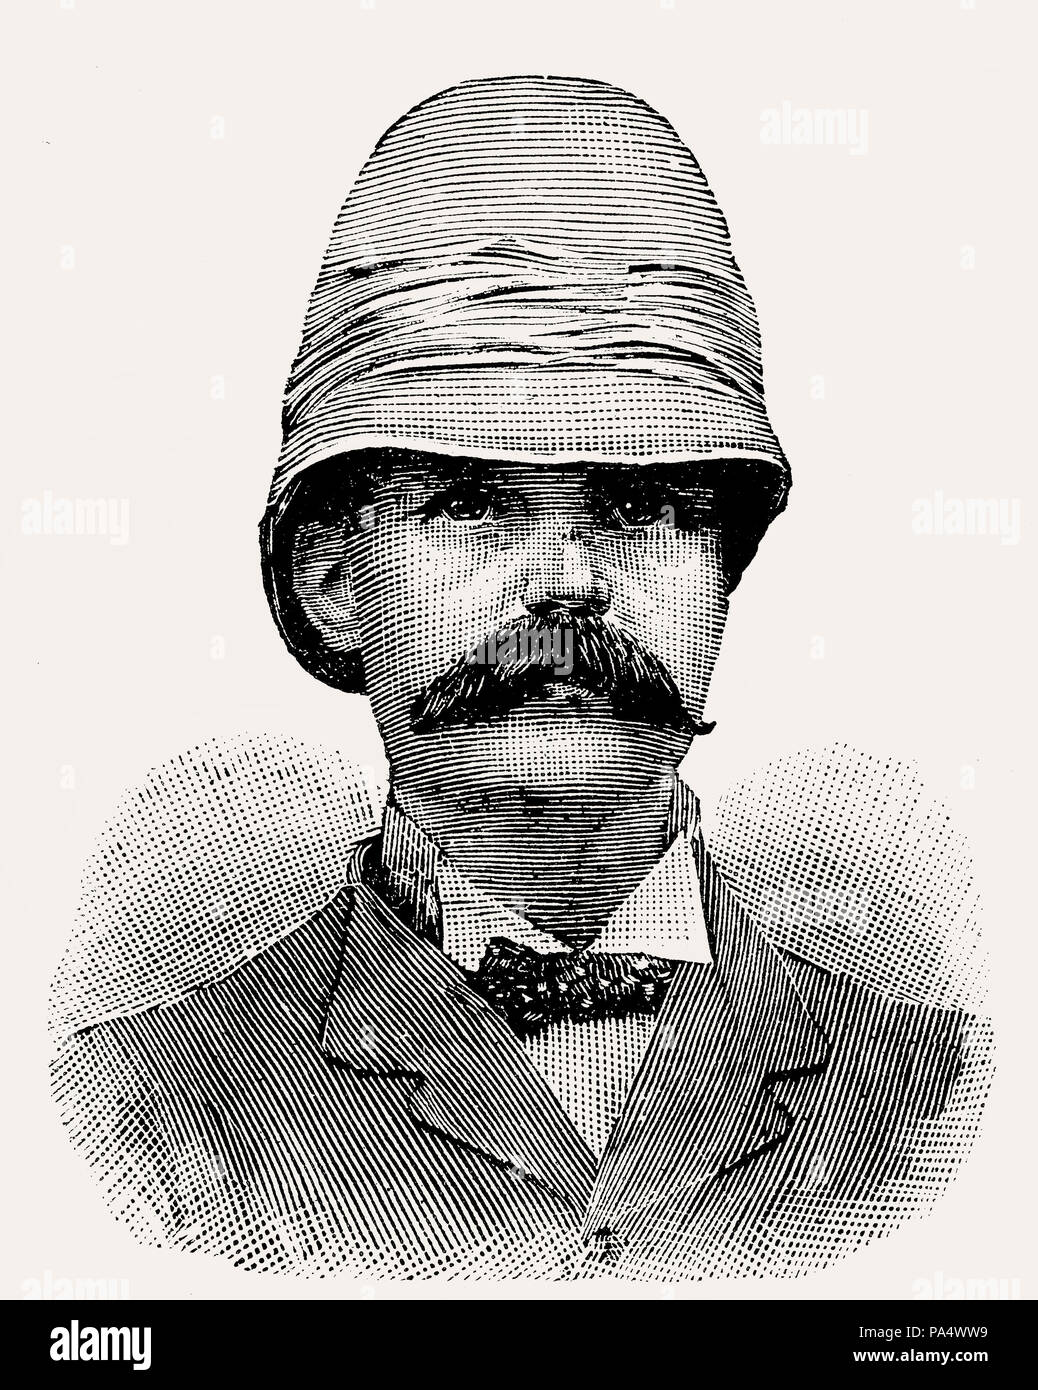 Sir George Scott Robertson, 1852 – 1916, a British soldier, author and administrator, From British Battles on Land and Sea, by James Grant - Stock Image